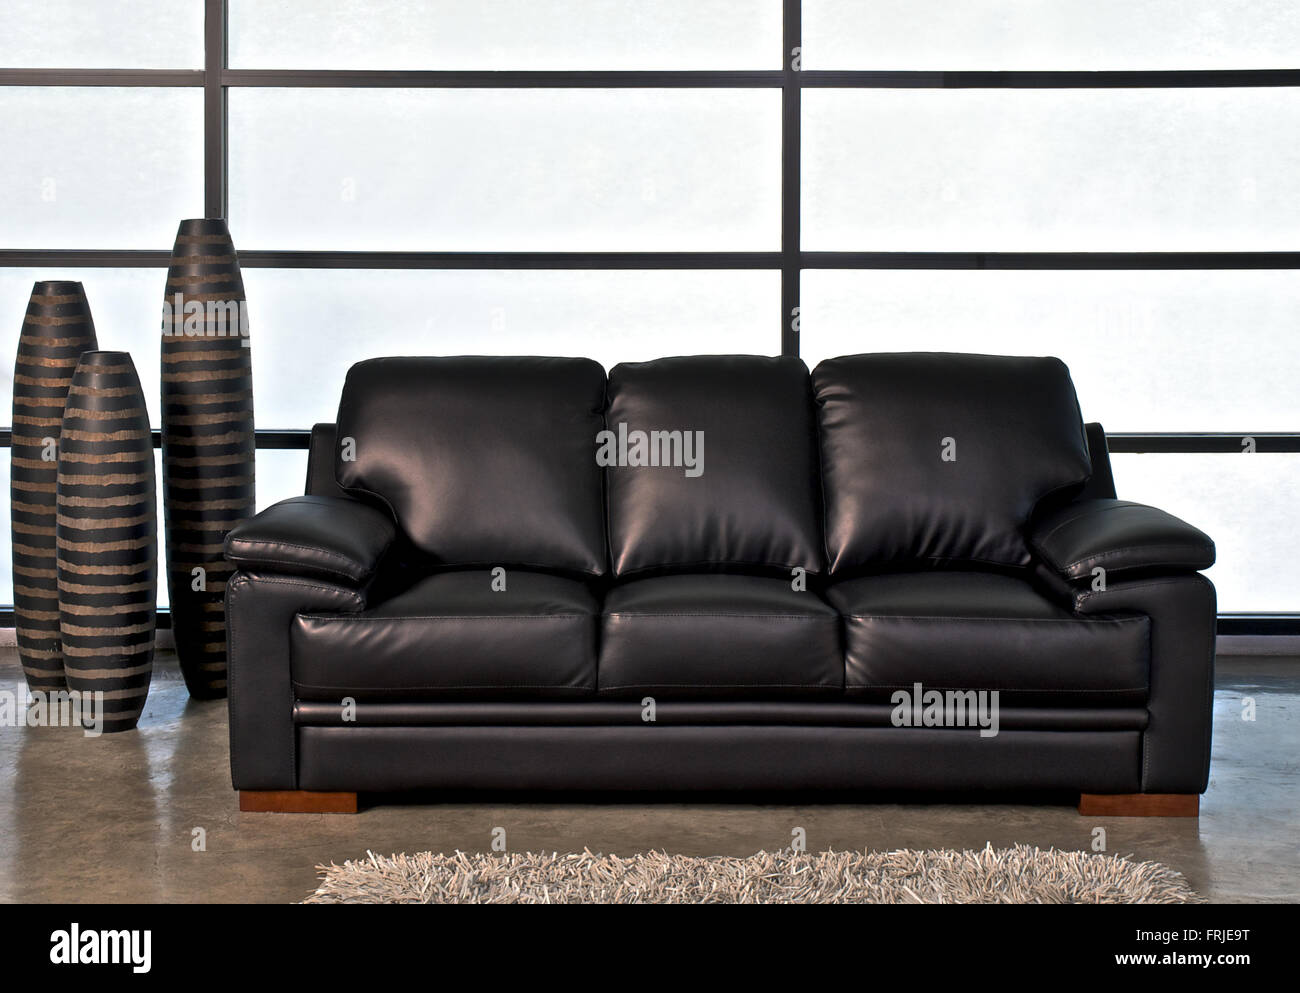 Black Leather Sofa For Home Or Office   Stock Image